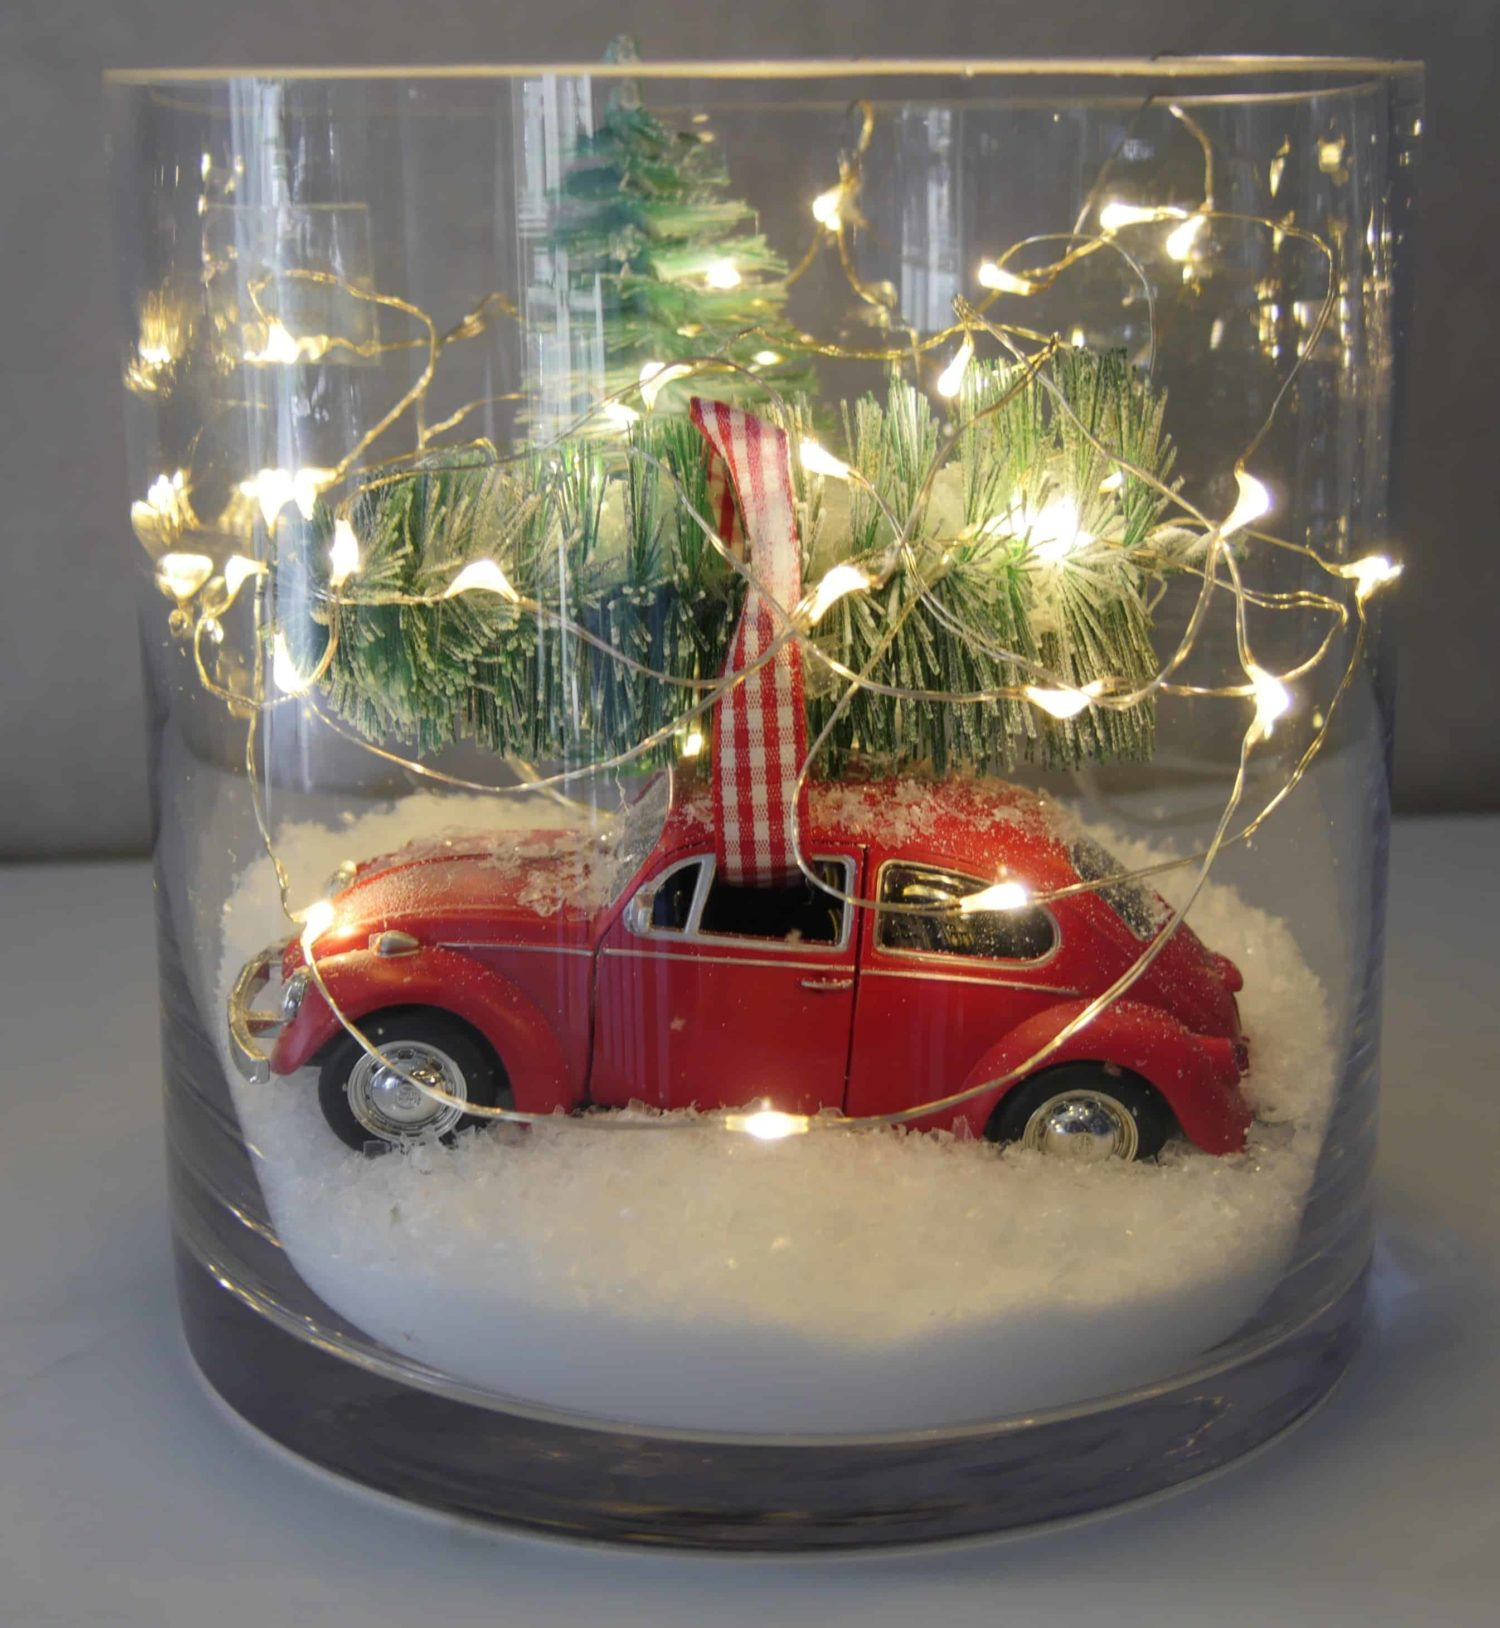 Car in a Jar for Christmas